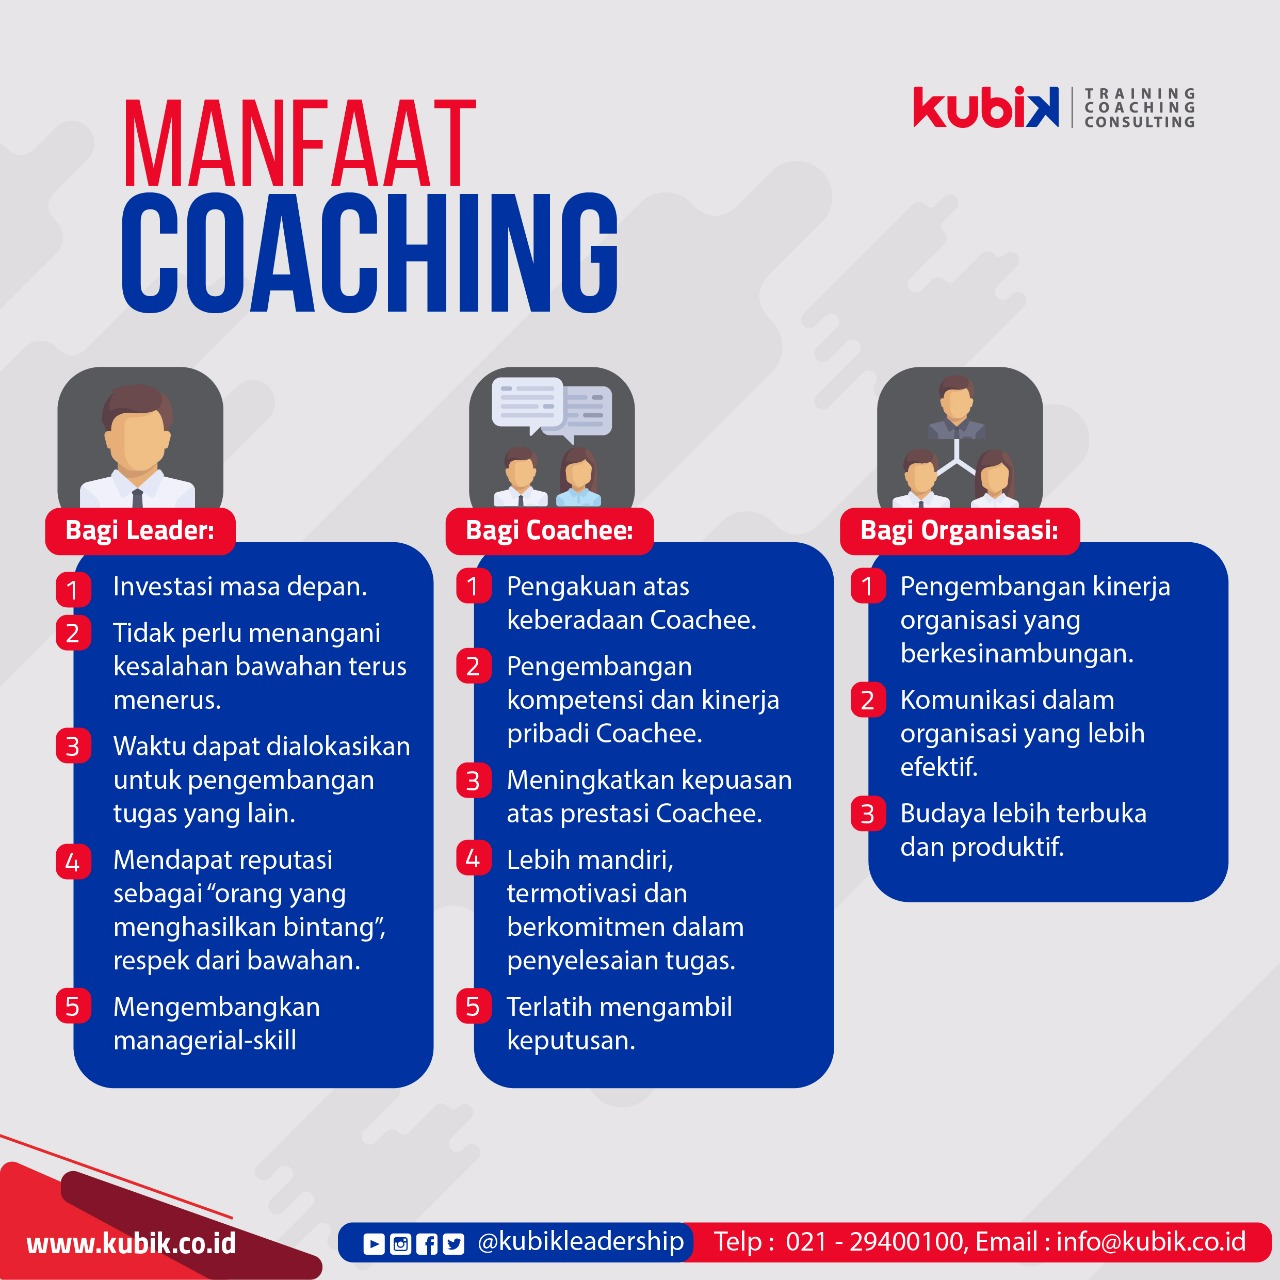 Manfaat Coaching